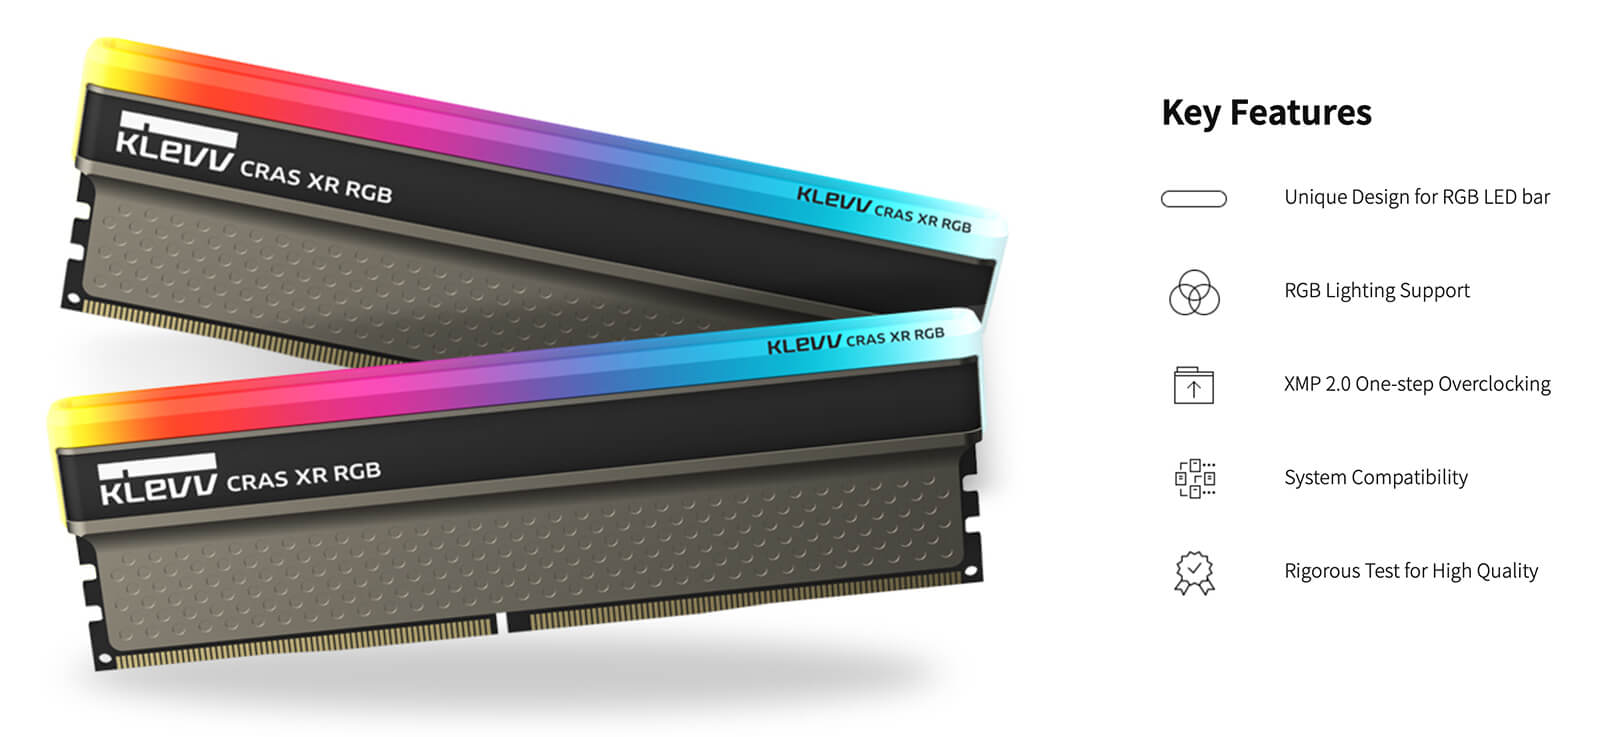 Klevv Cras Xr Rgb Ddr4 Oc Memory Keys Feature